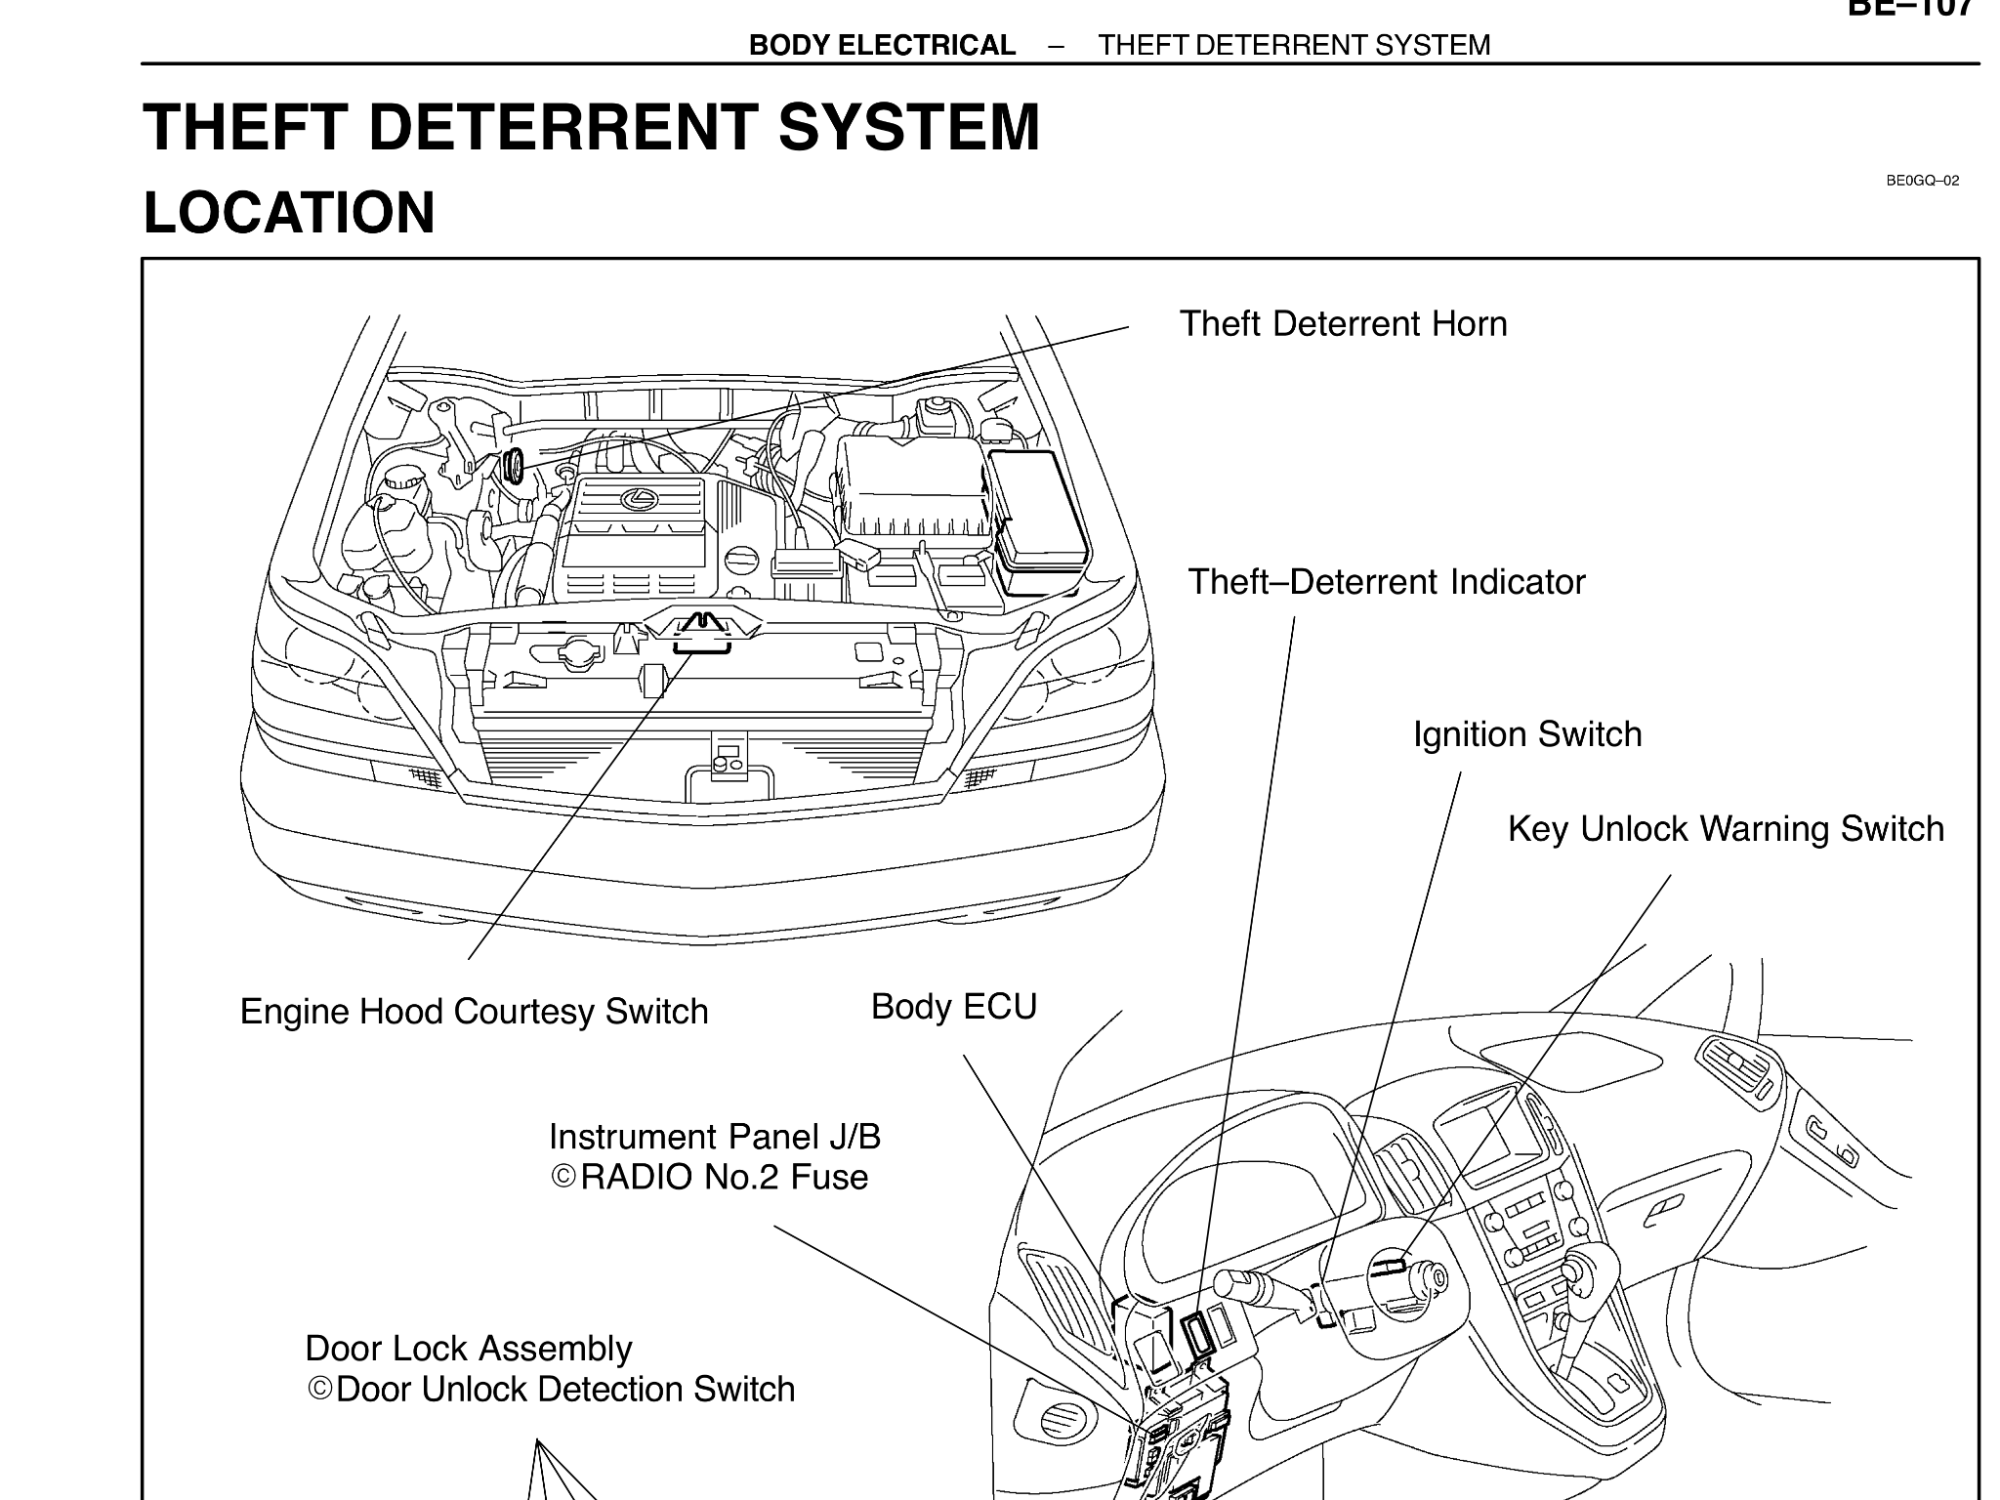 Diy Defeating The Rx300 Security System